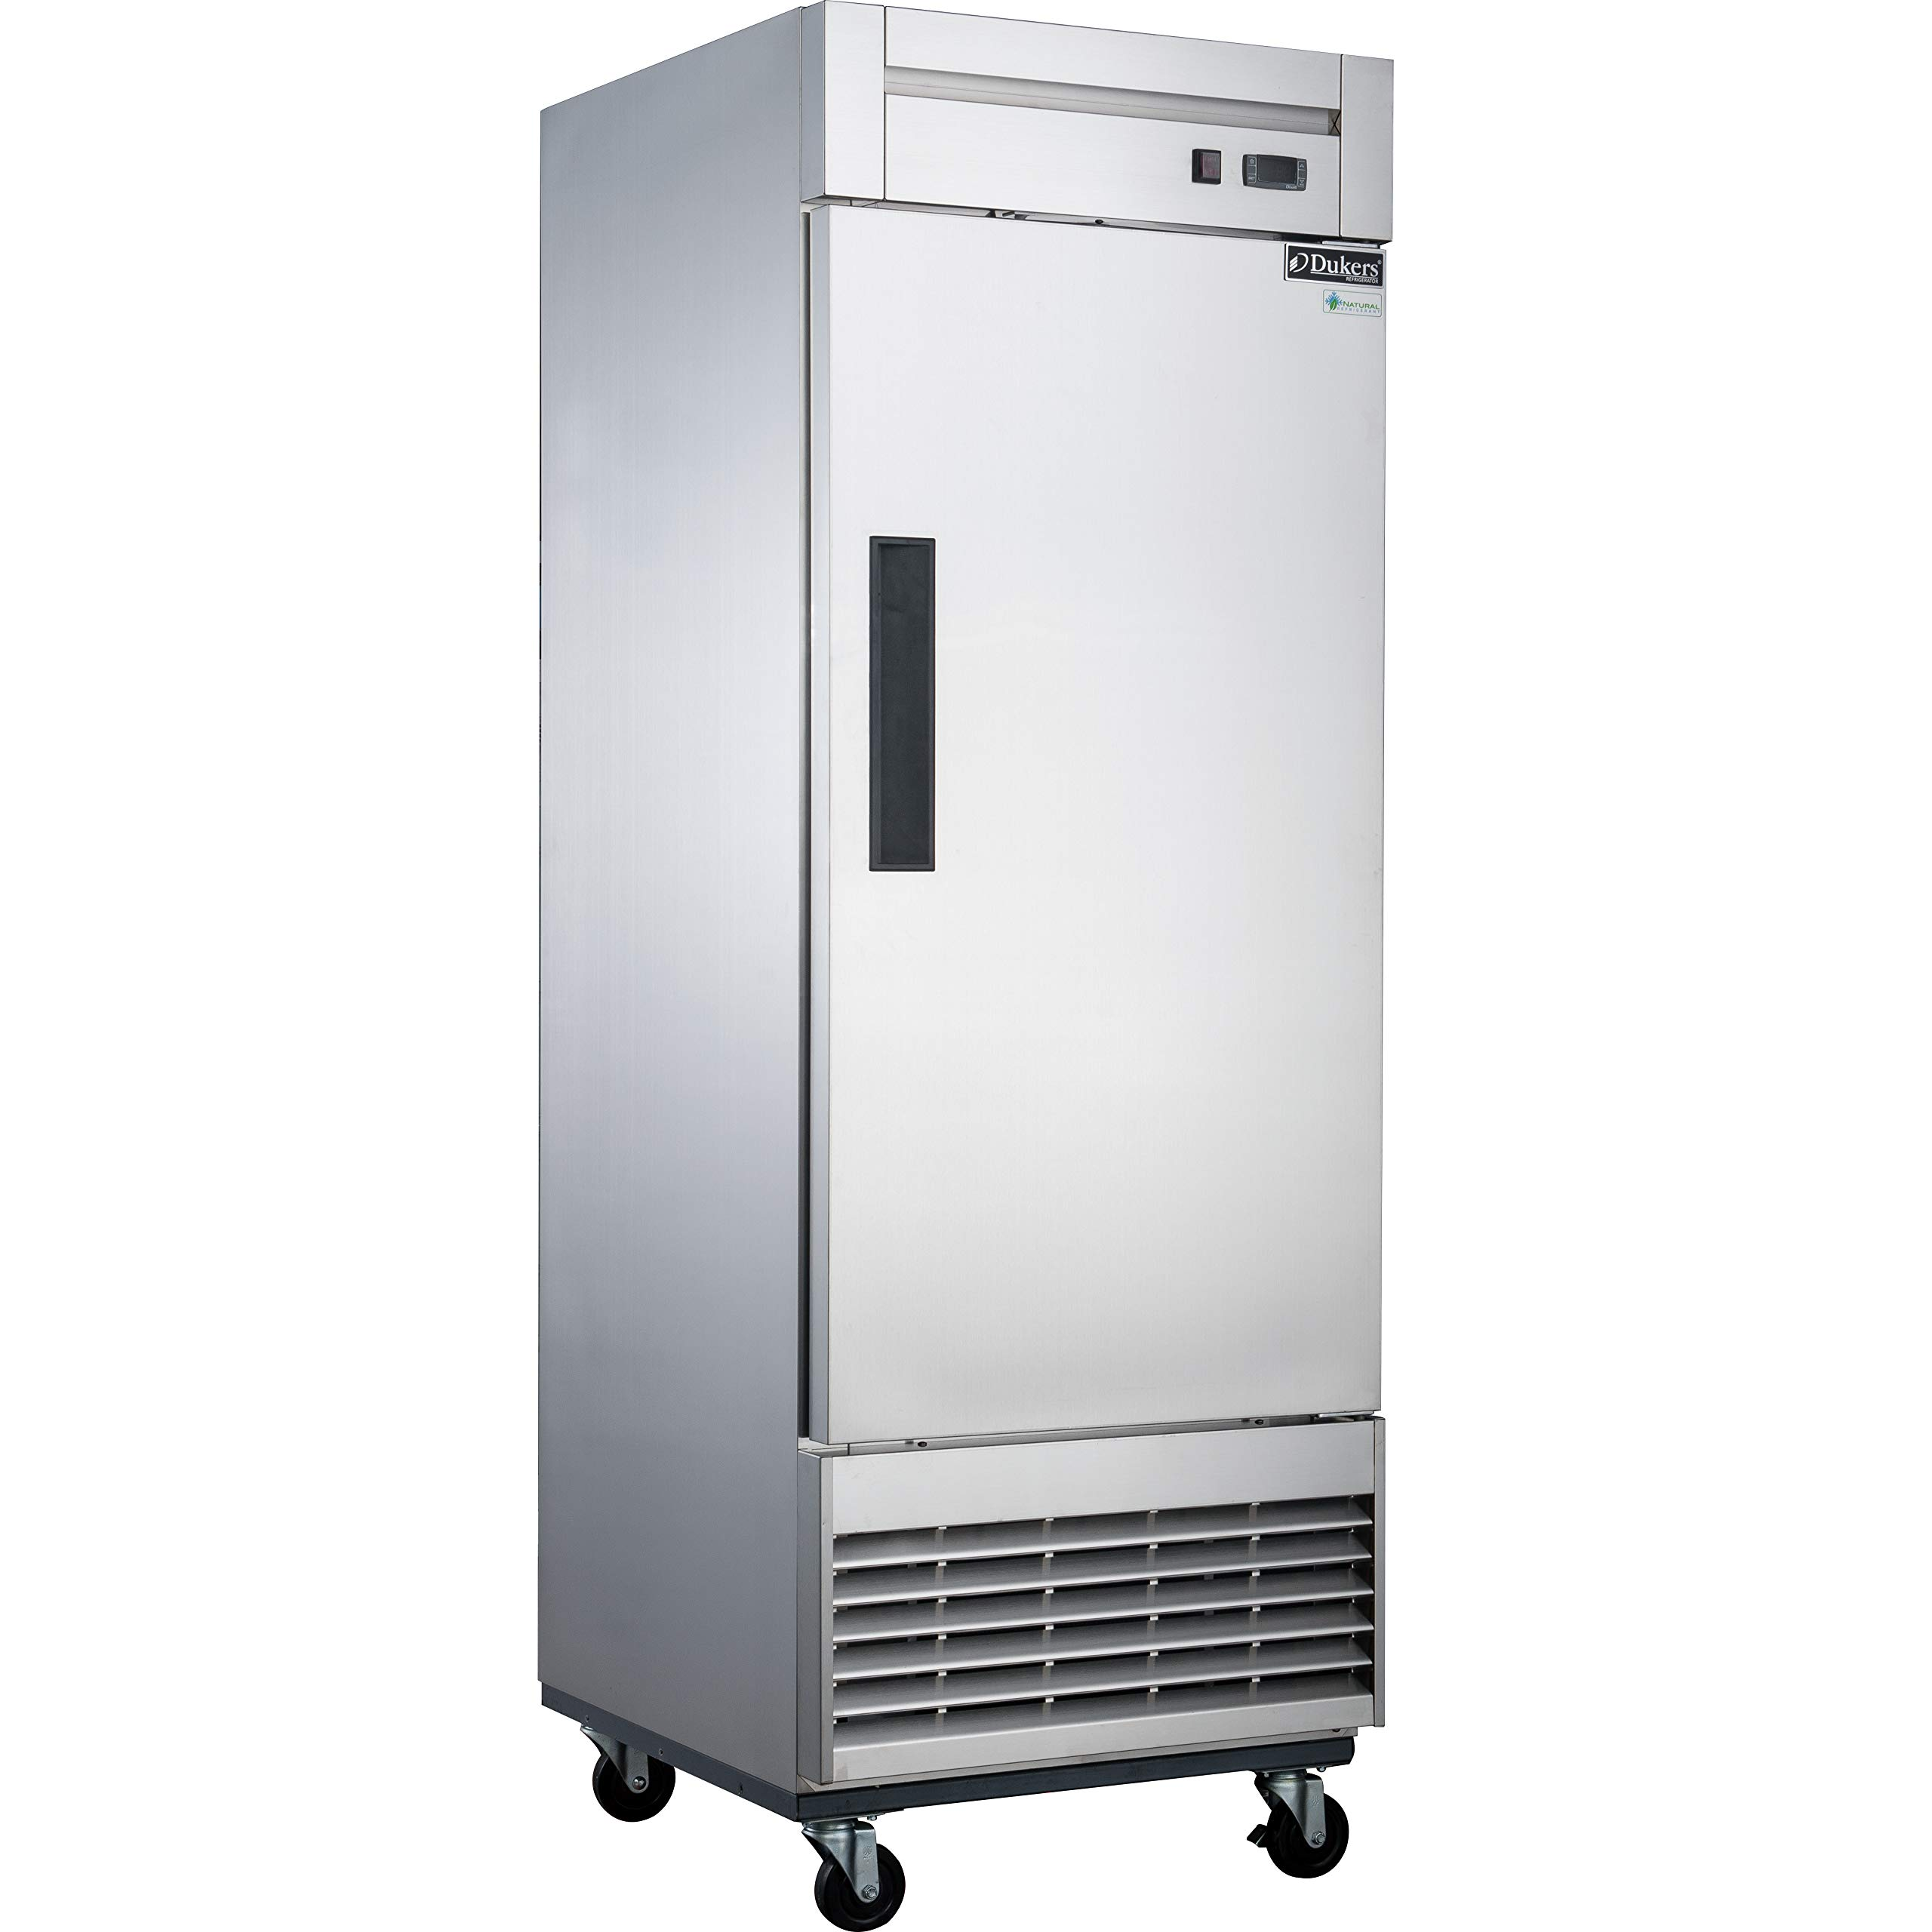 Dukers D28R 17.7 cu. ft. Energy Star Certified Commercial Refrigerator